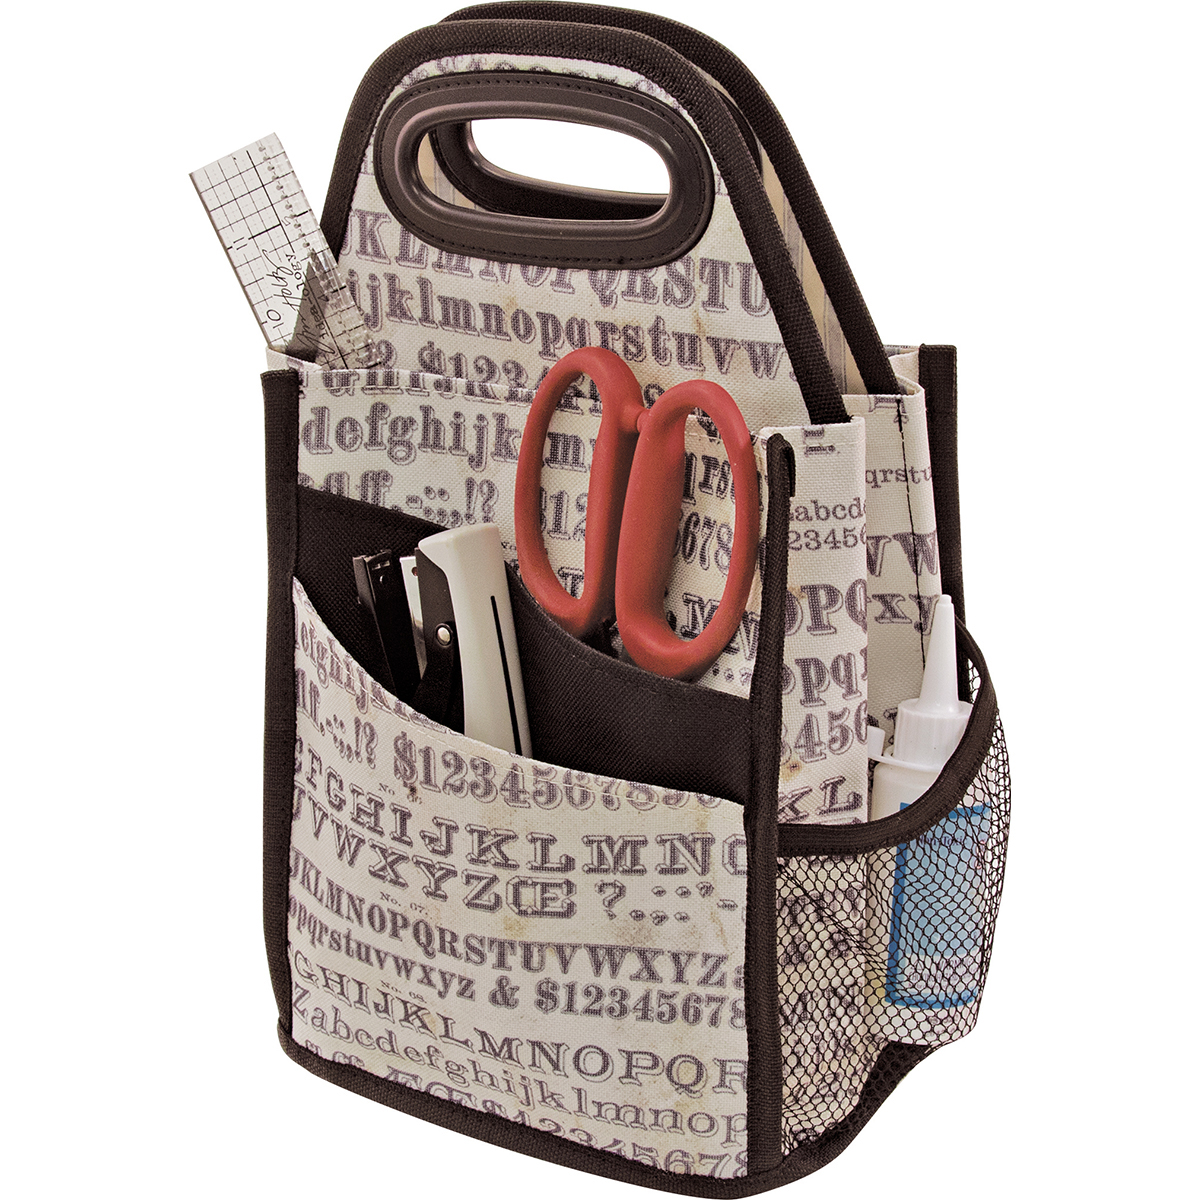 Tim Holtz Typography Spinning Craft Tote